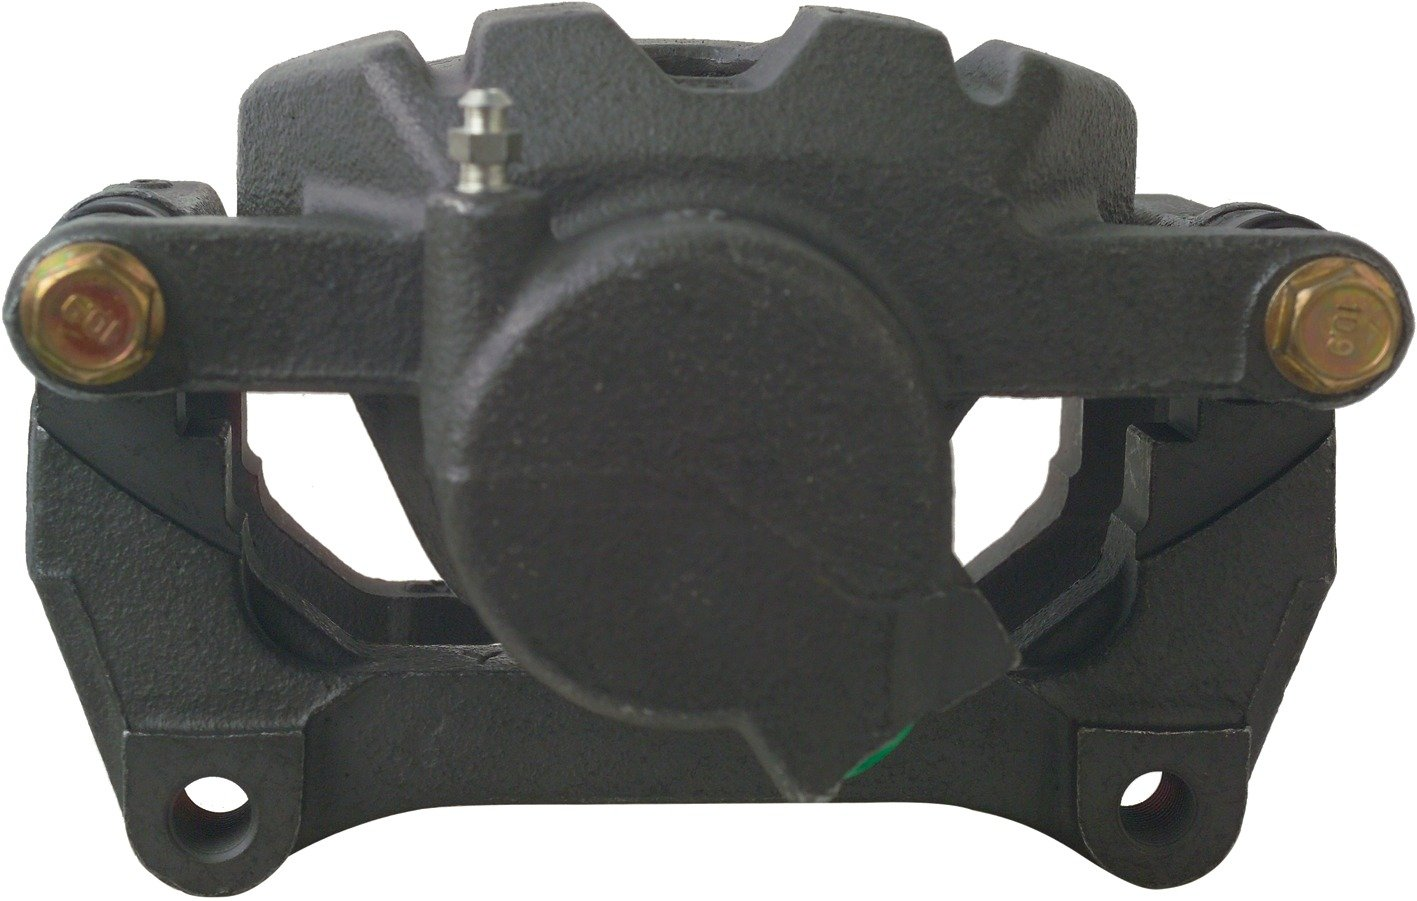 Cardone 19-B3248 Remanufactured Import Friction Ready (Unloaded) Brake Caliper